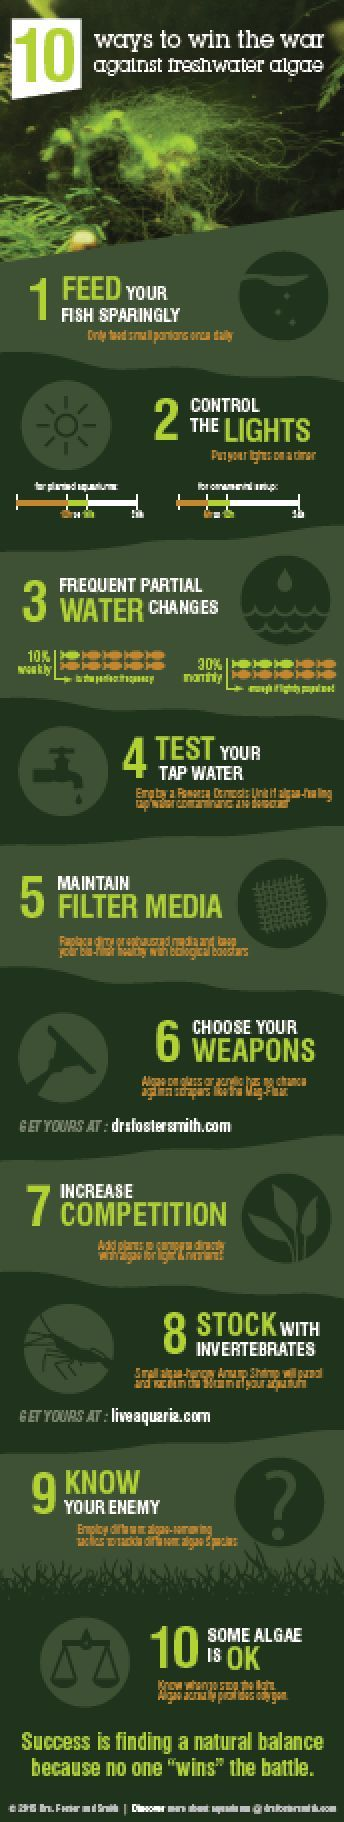 cool 37 Super Easy Ways to Control Algae and Get Crystal Clear Water. - TFCG by http://www.dezdemon-exoticfish.space/freshwater-fish/37-super-easy-ways-to-control-algae-and-get-crystal-clear-water-tfcg/